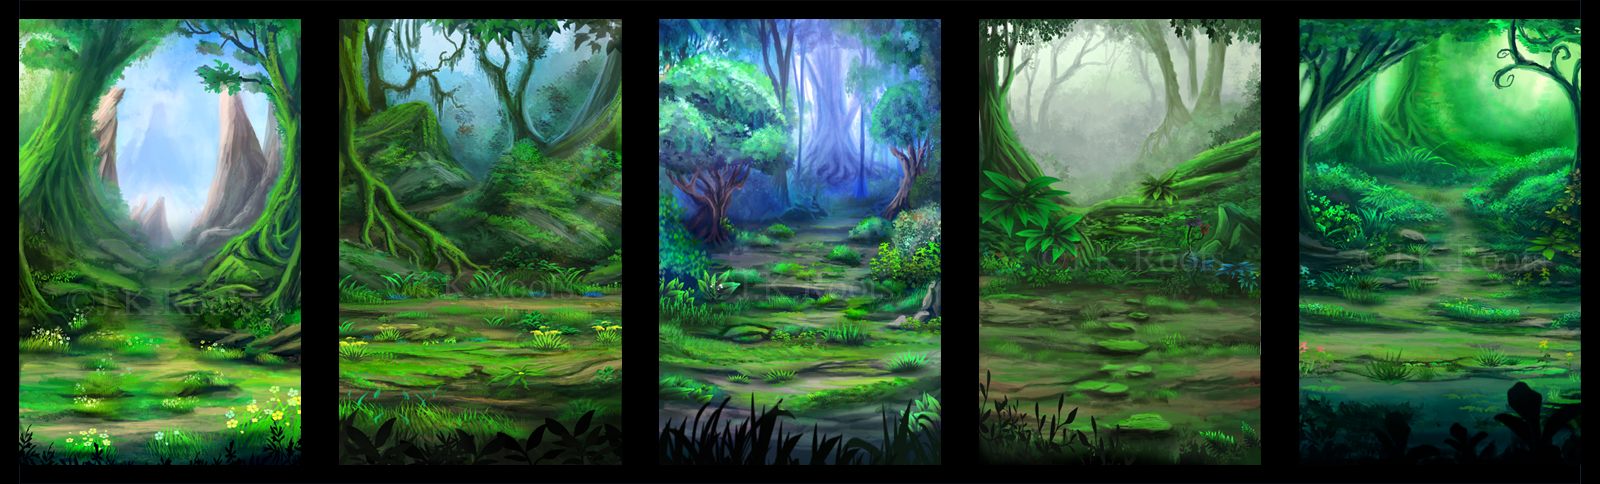 Outer forest designs by jkroots on deviantart for Outer painting design